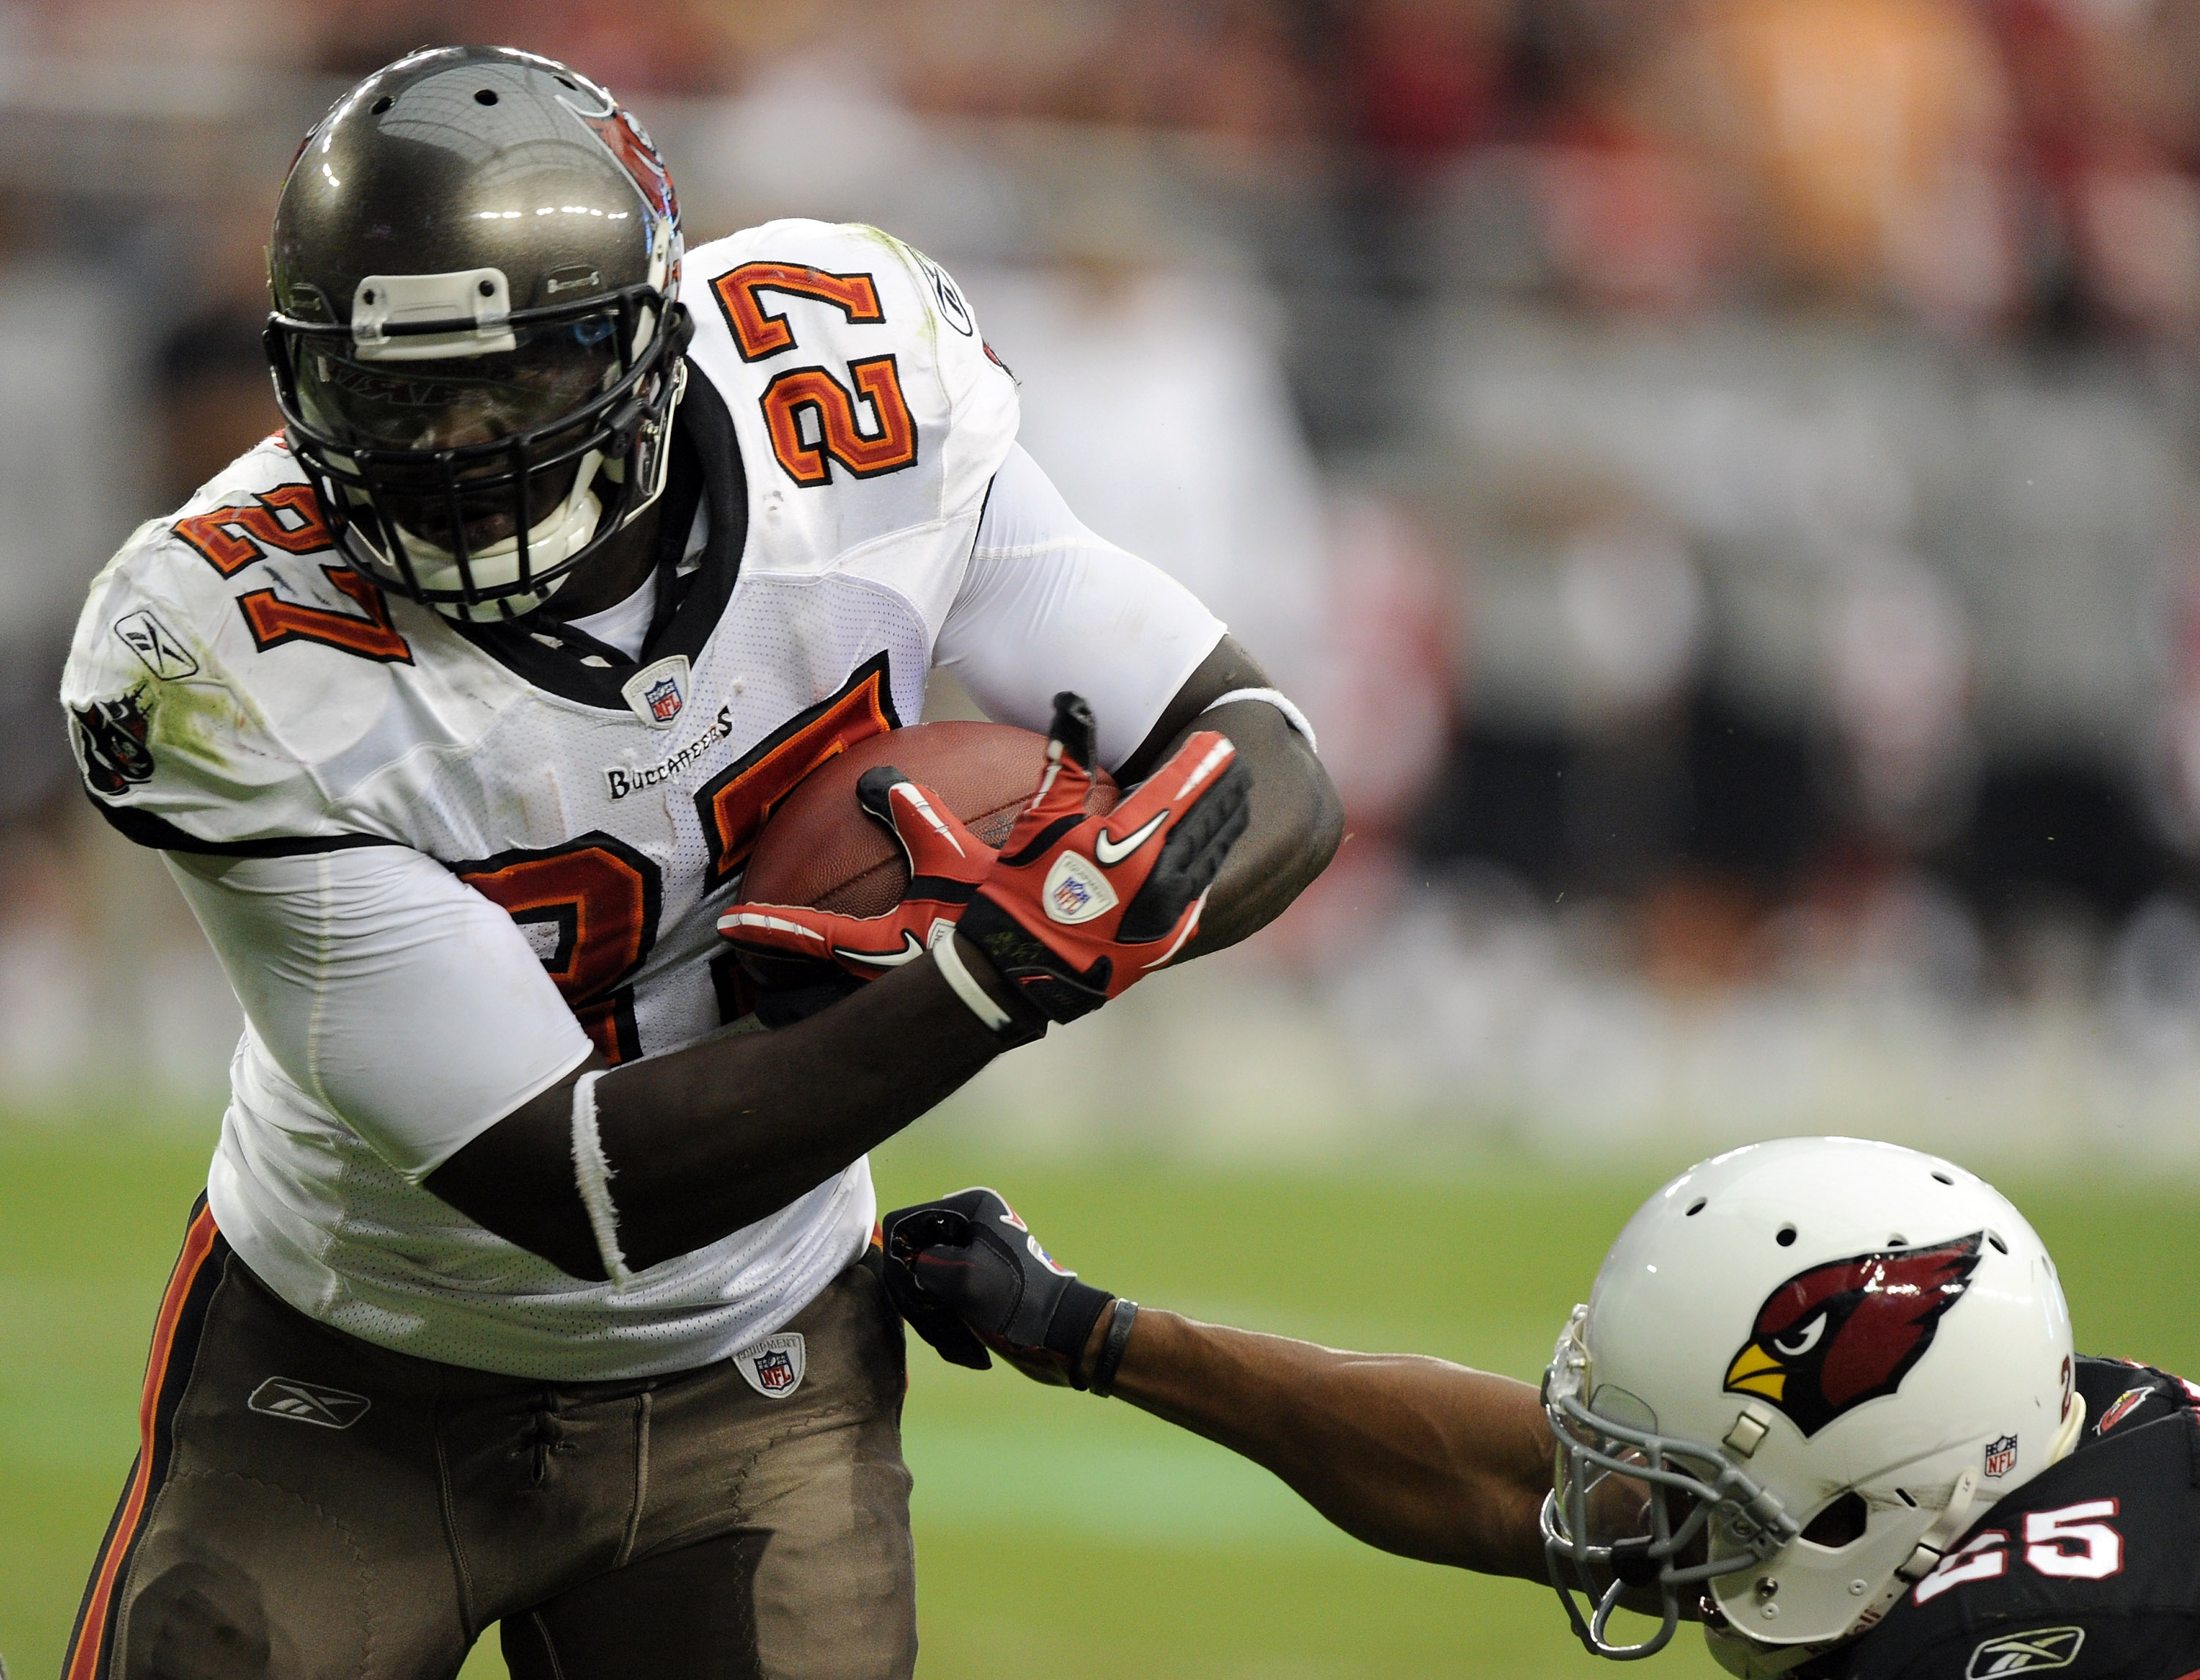 GLENDALE, AZ - OCTOBER 31:  LaGarrette Blount #27 of the Tampa Bay Buccaneers gets away from Kerry Rhodes #25 of the Arizona Cardinals at University of Phoenix Stadium on October 31, 2010 in Glendale, Arizona.  (Photo by Harry How/Getty Images)